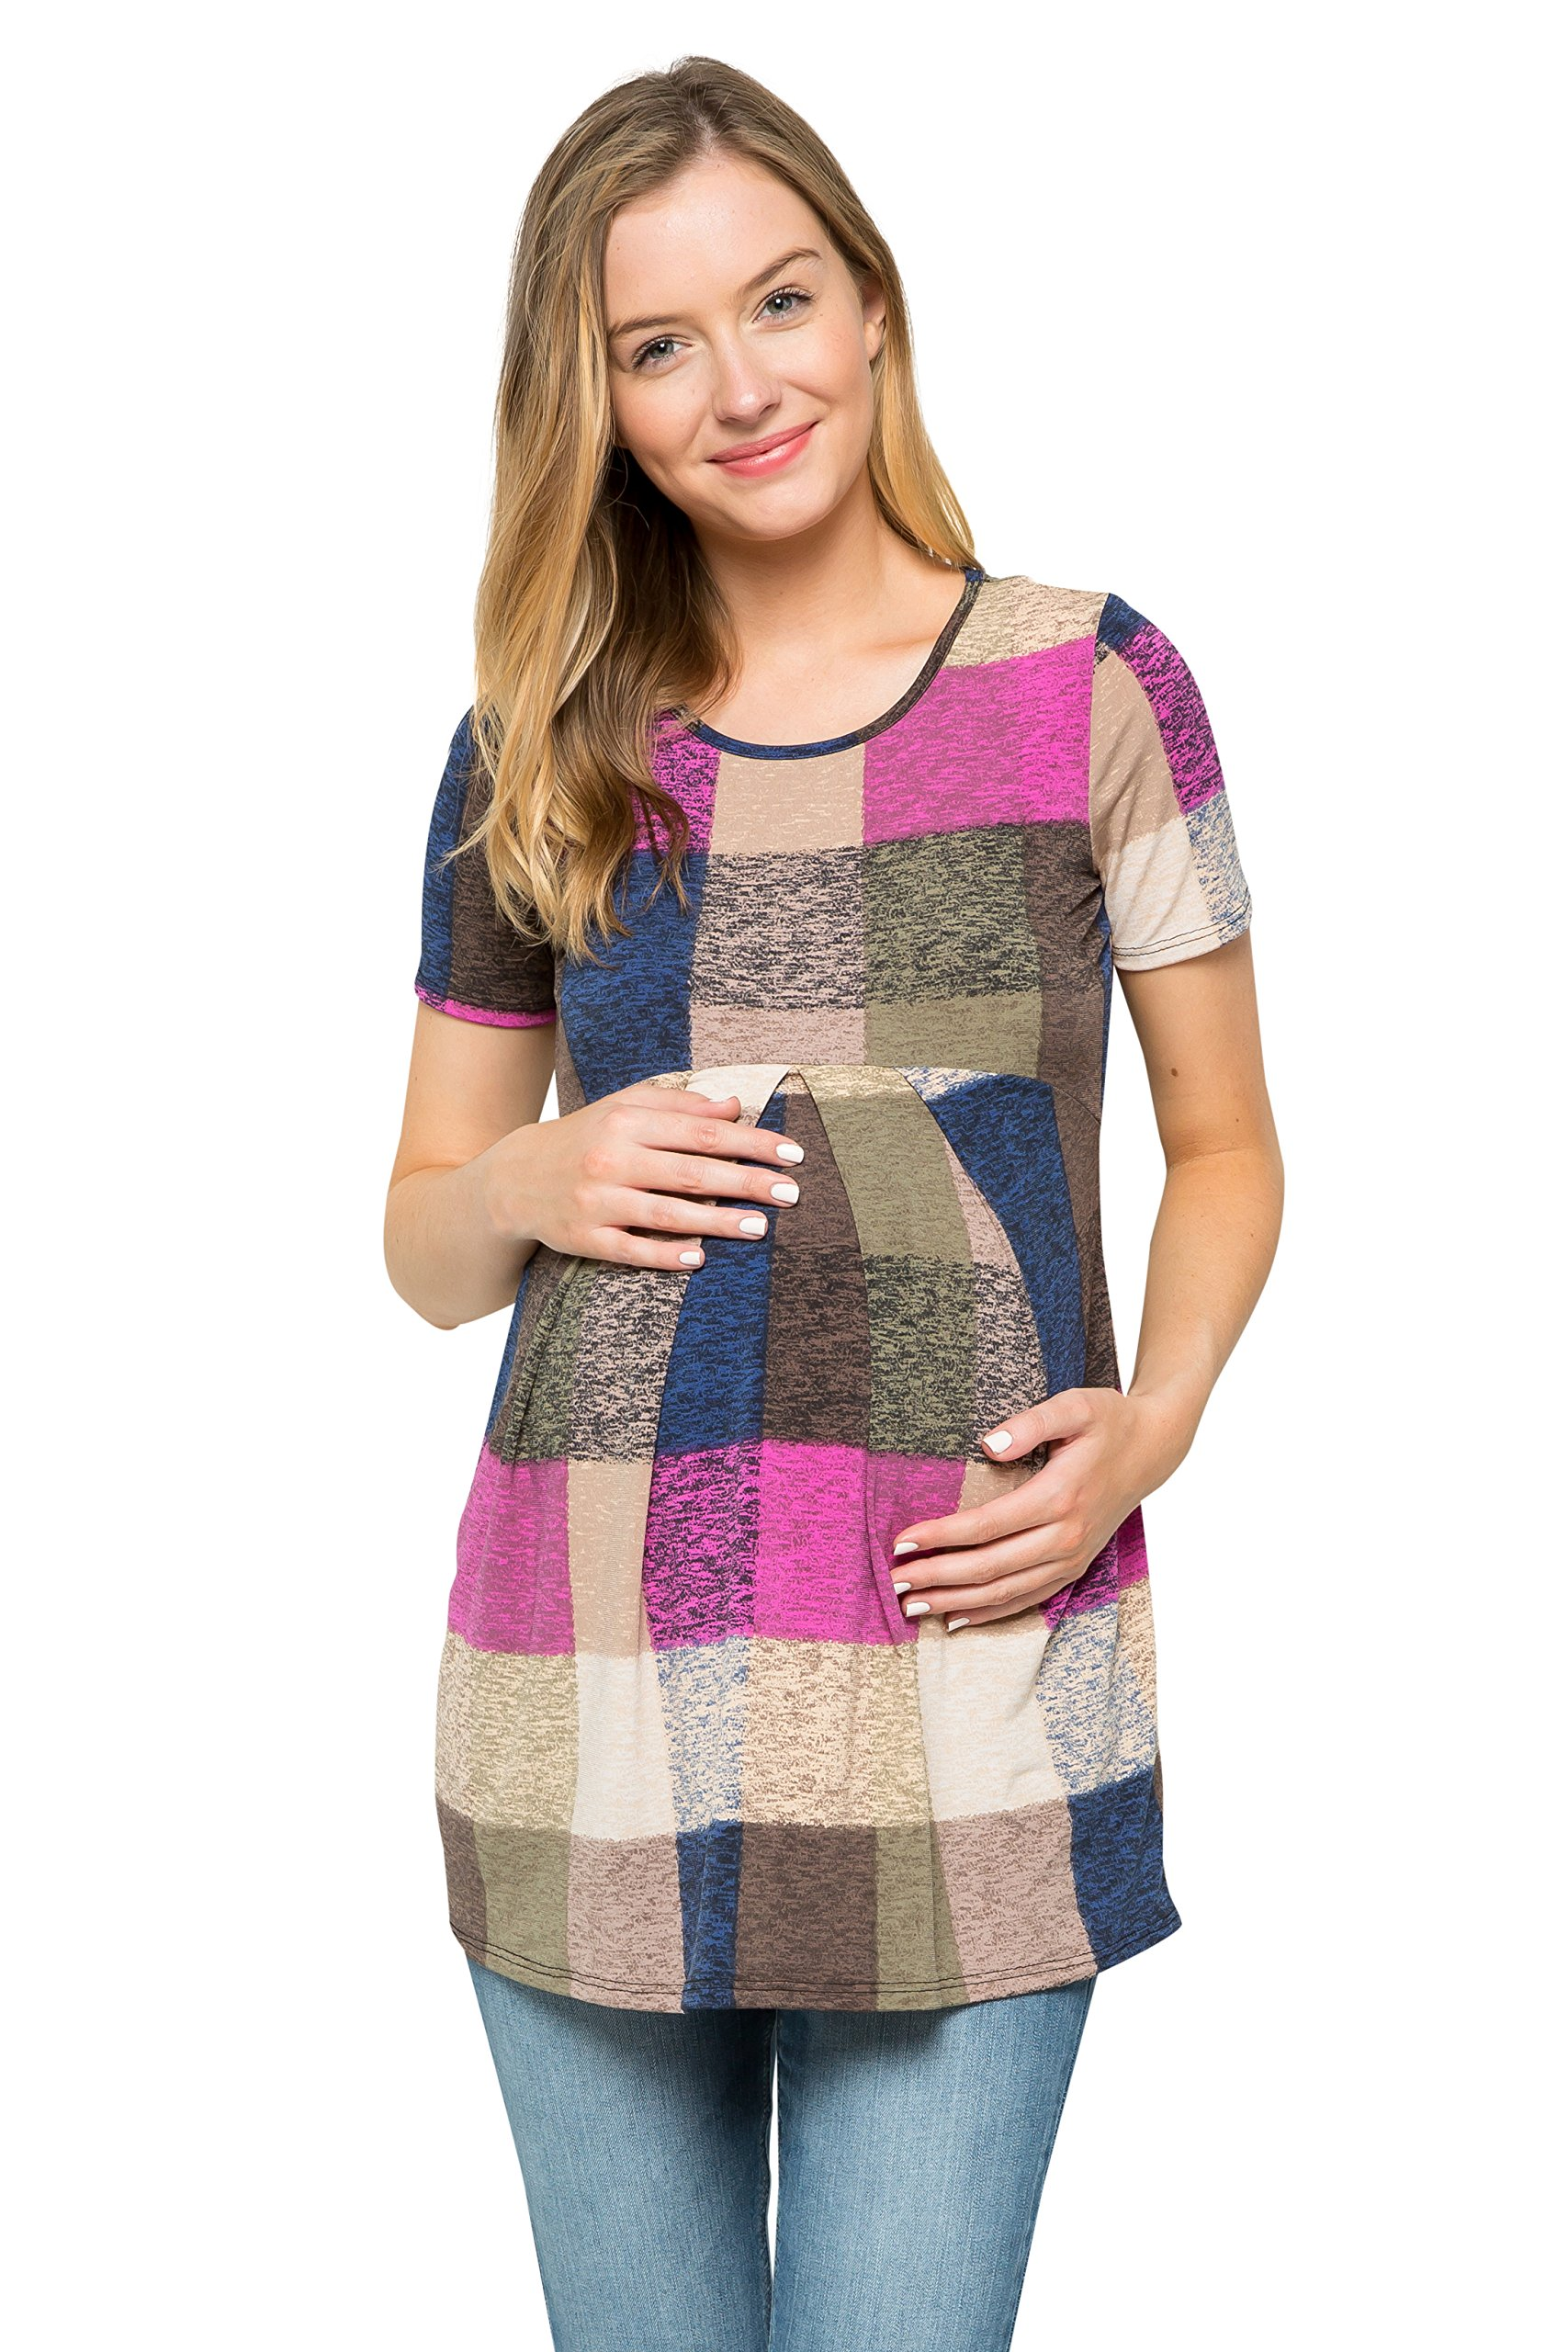 My Bump Women's Maternity Front Pleat Short Sleeve Casual Top(Made in USA) (Small, Magenta/Sand SYAC)